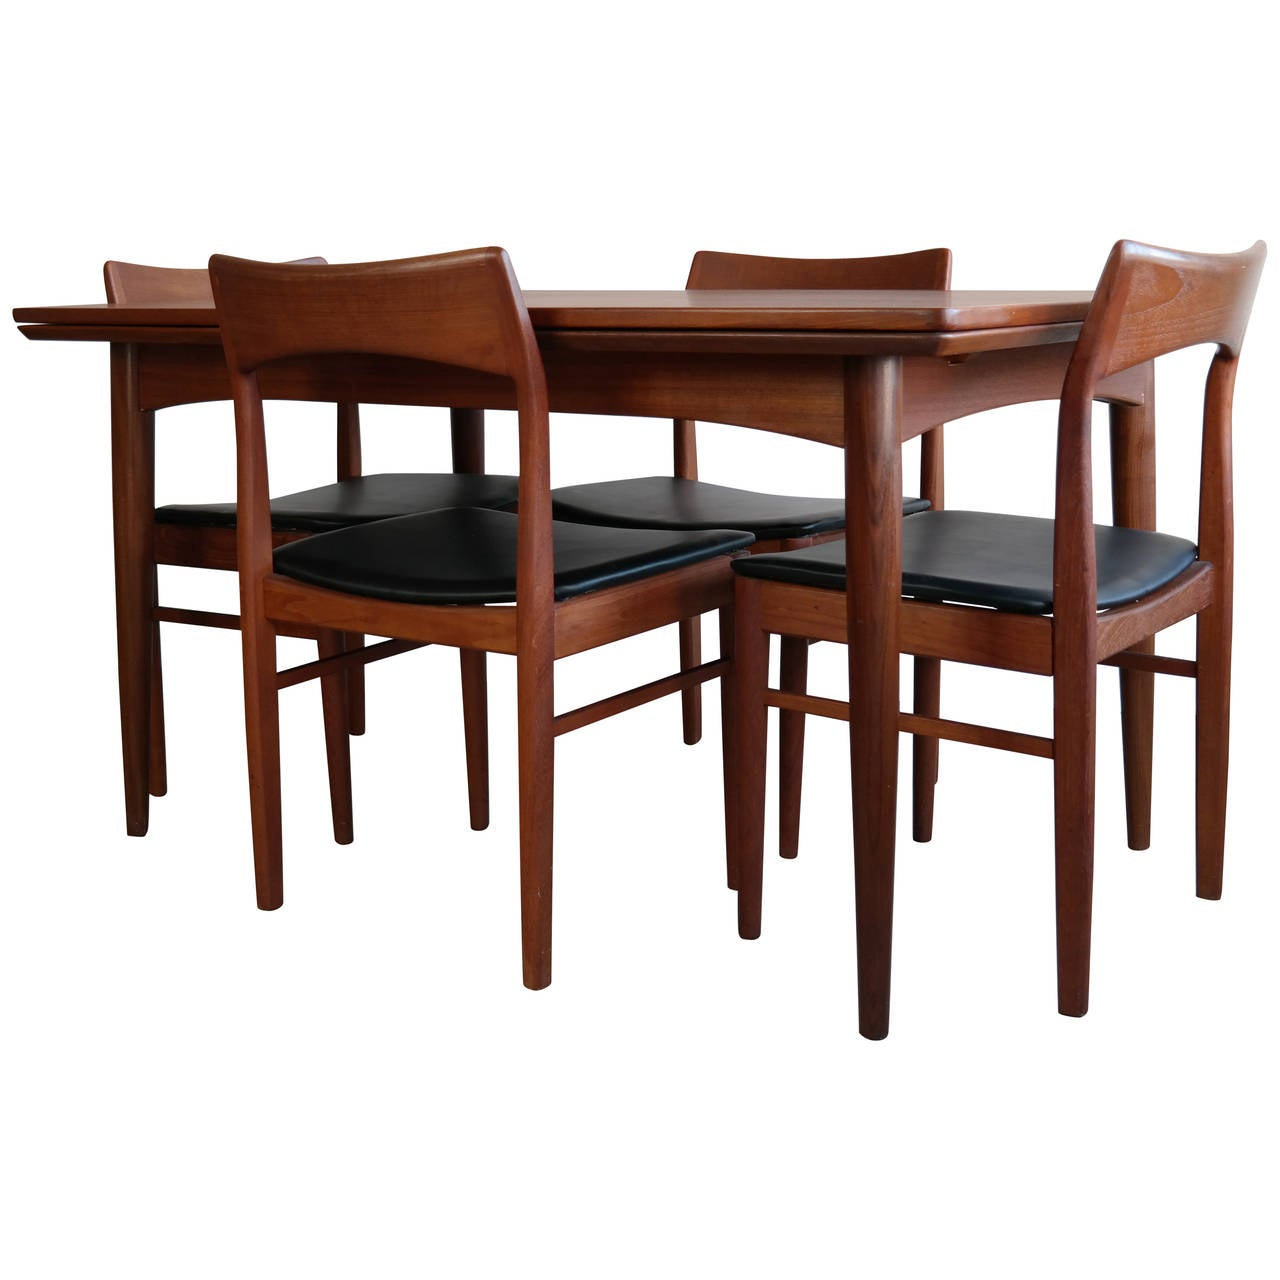 Danish modern dining set in teak at 1stdibs for Dining room furniture modern